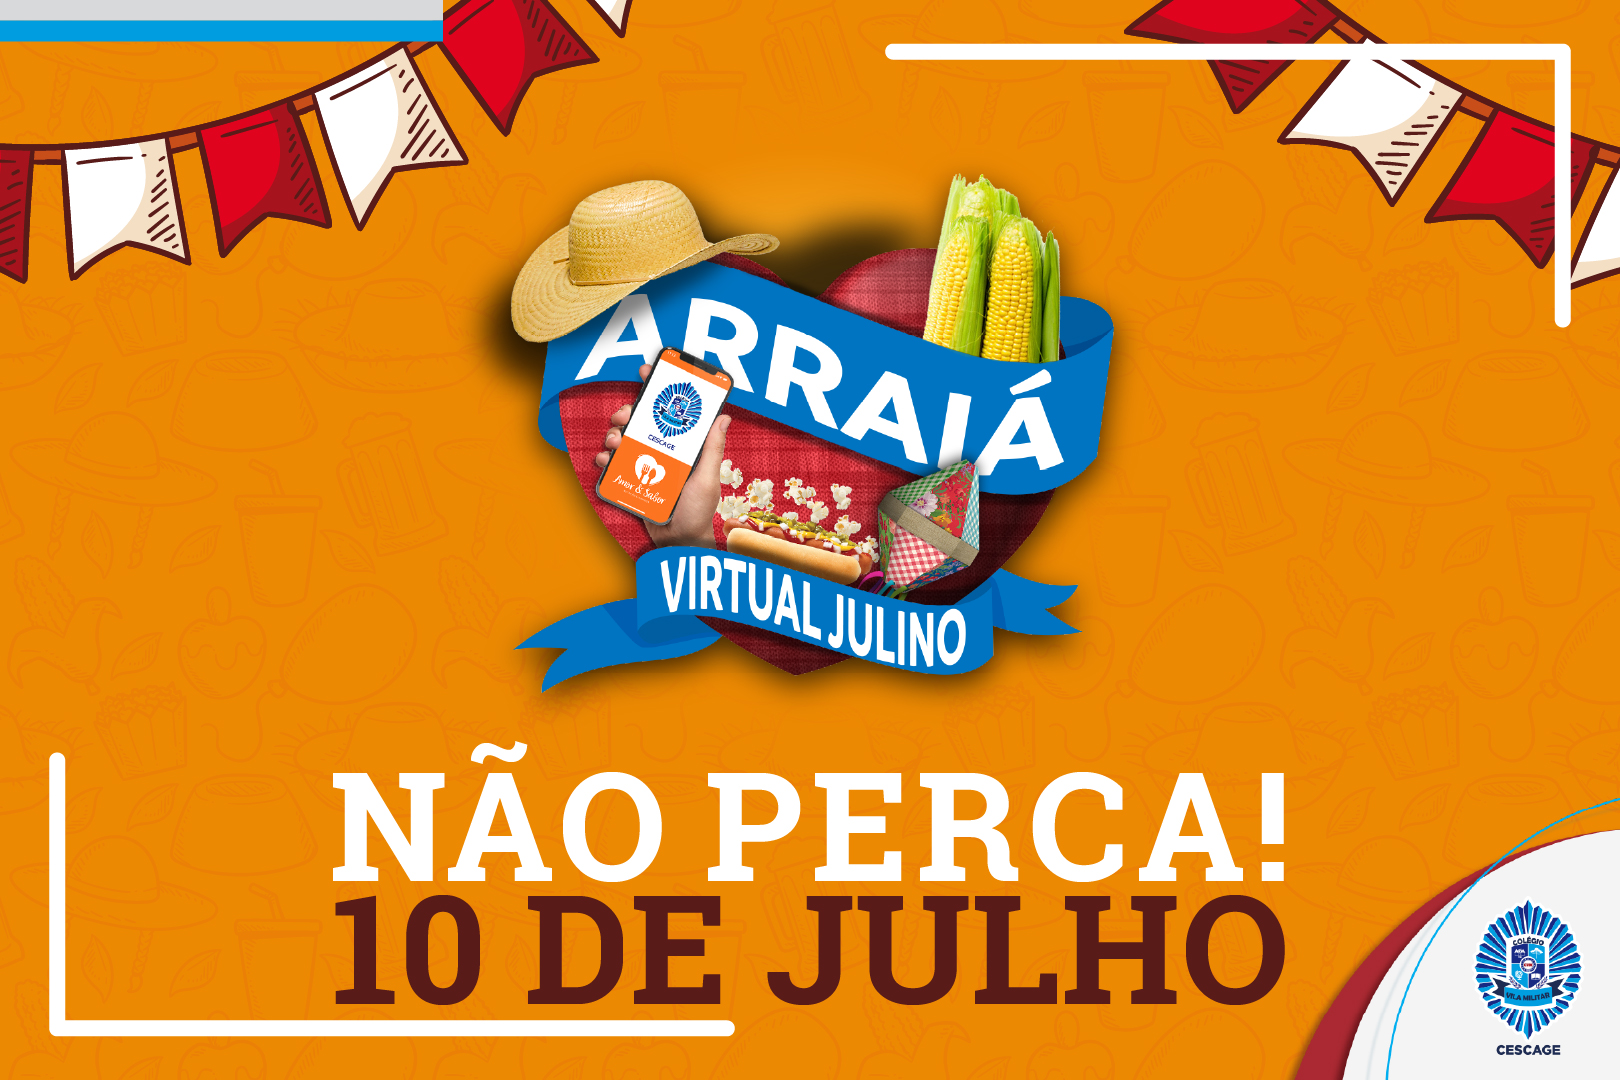 Arraiá Virtual Julino